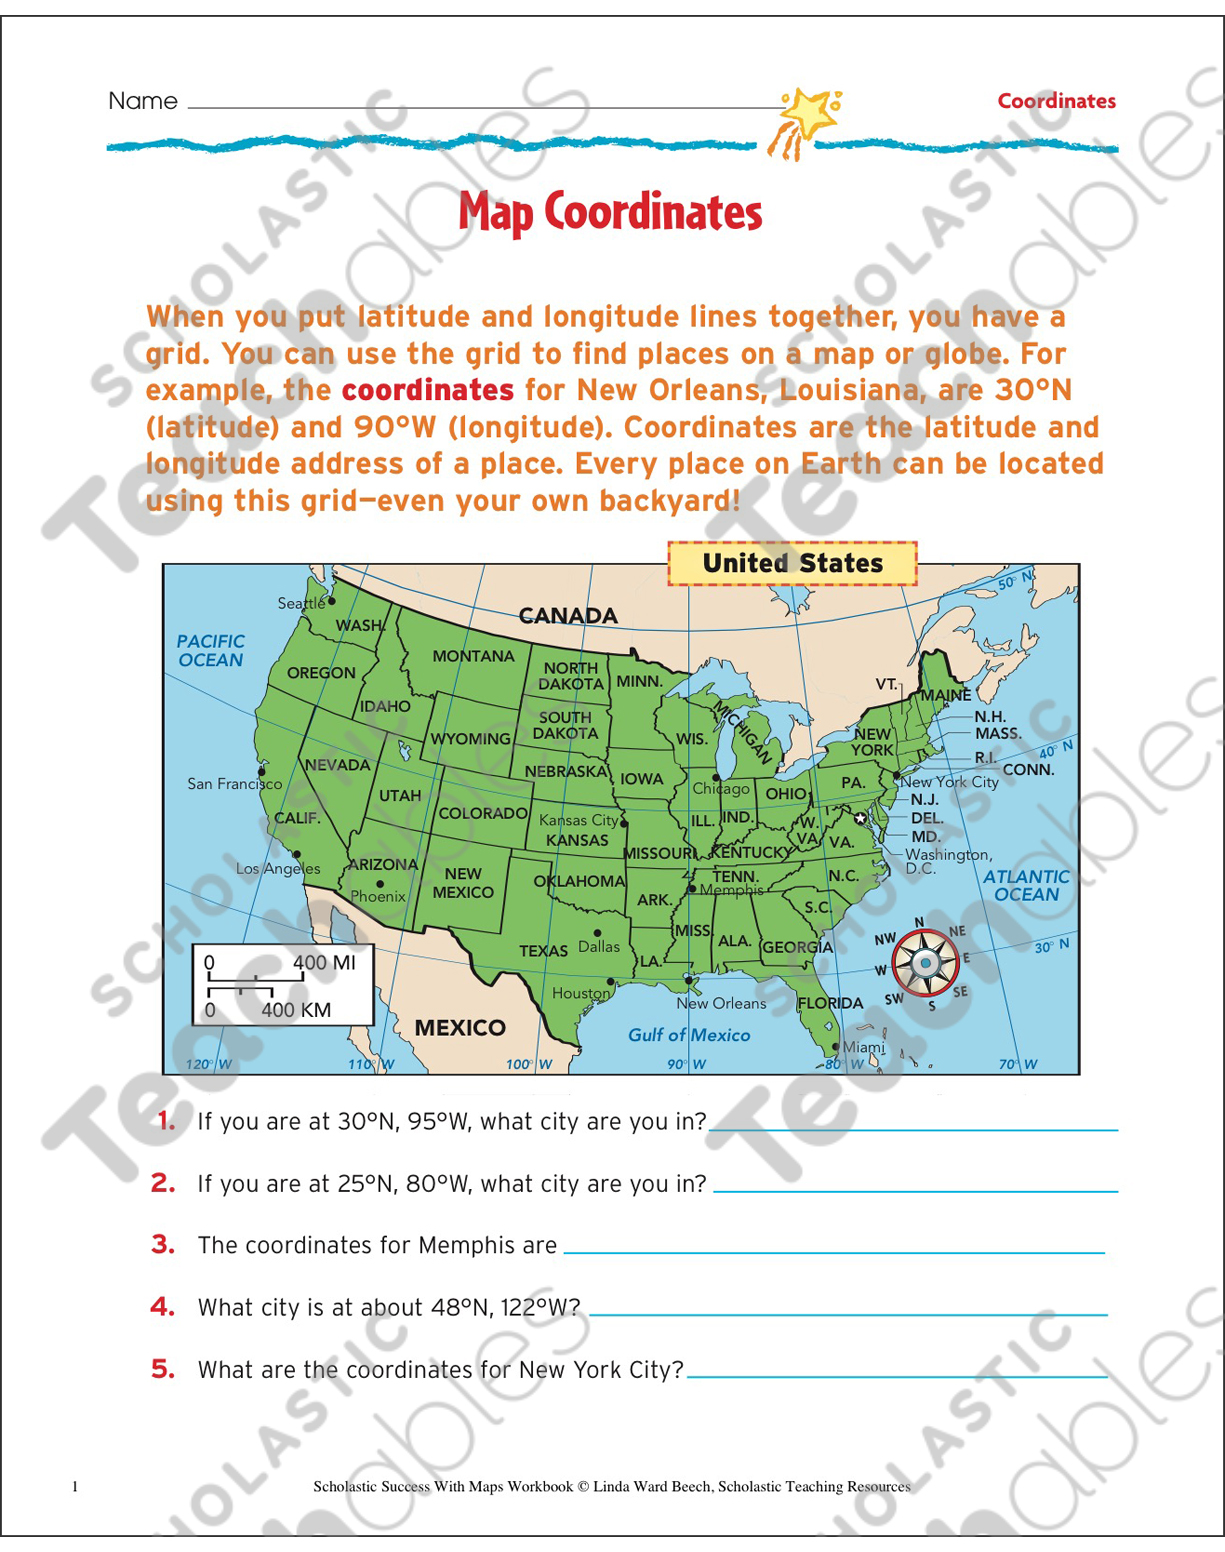 Map coordinates map skills printable maps and skills sheets see inside image sciox Image collections